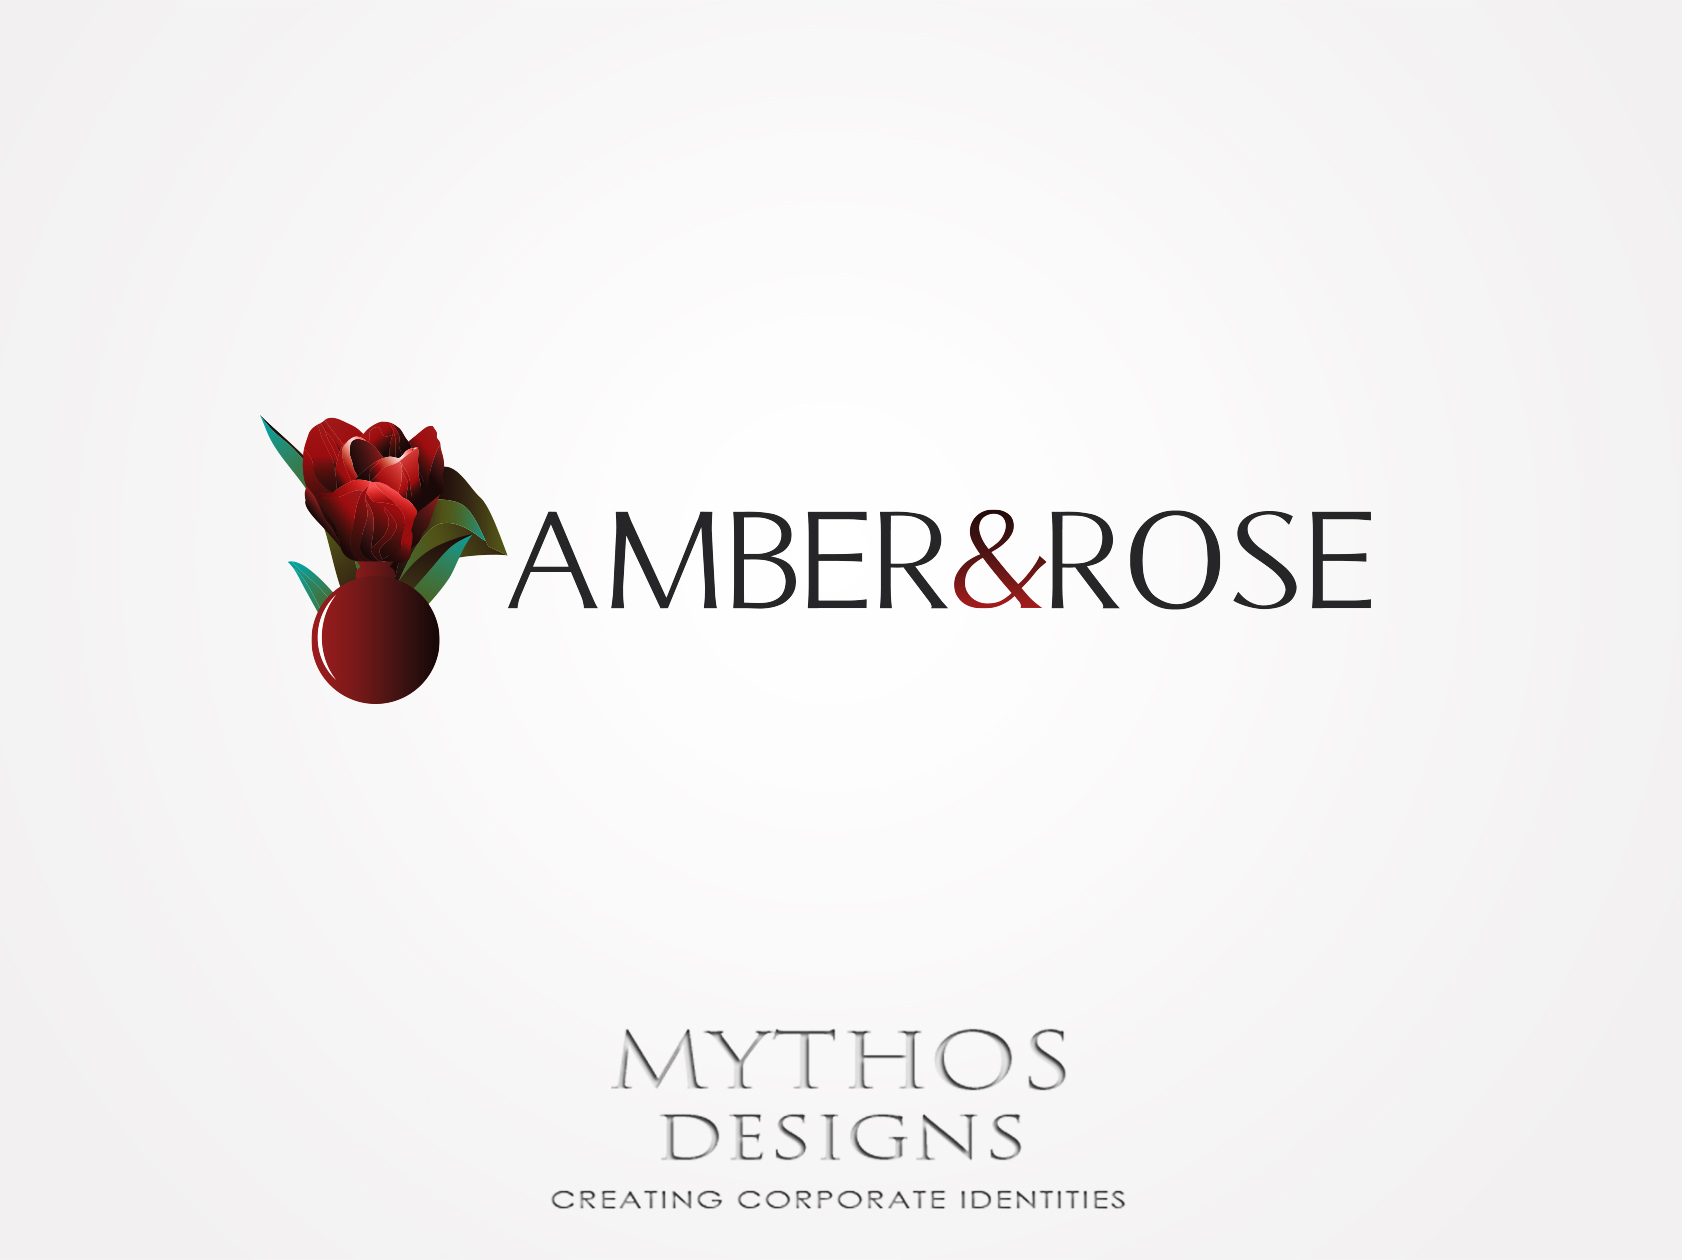 Logo Design by Mythos Designs - Entry No. 84 in the Logo Design Contest Creative Logo Design for Amber & Rose.